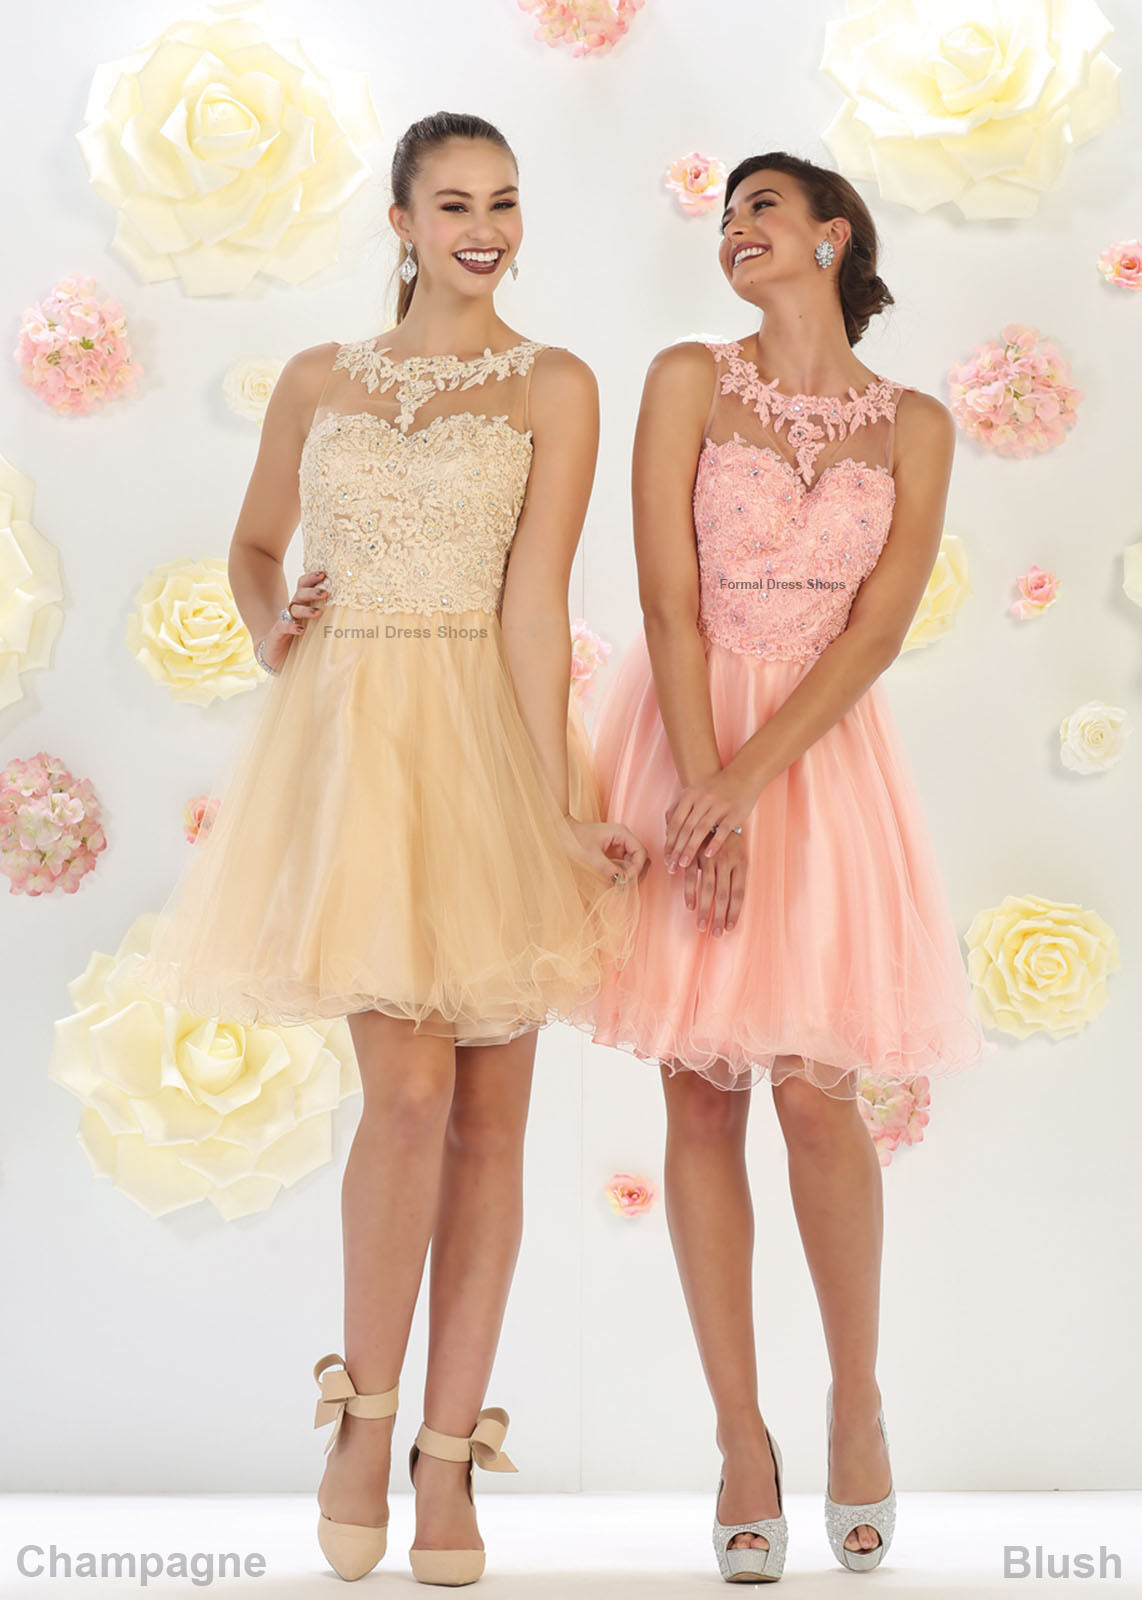 636eef6ab1a Where To Go For Homecoming Dresses - Gomes Weine AG